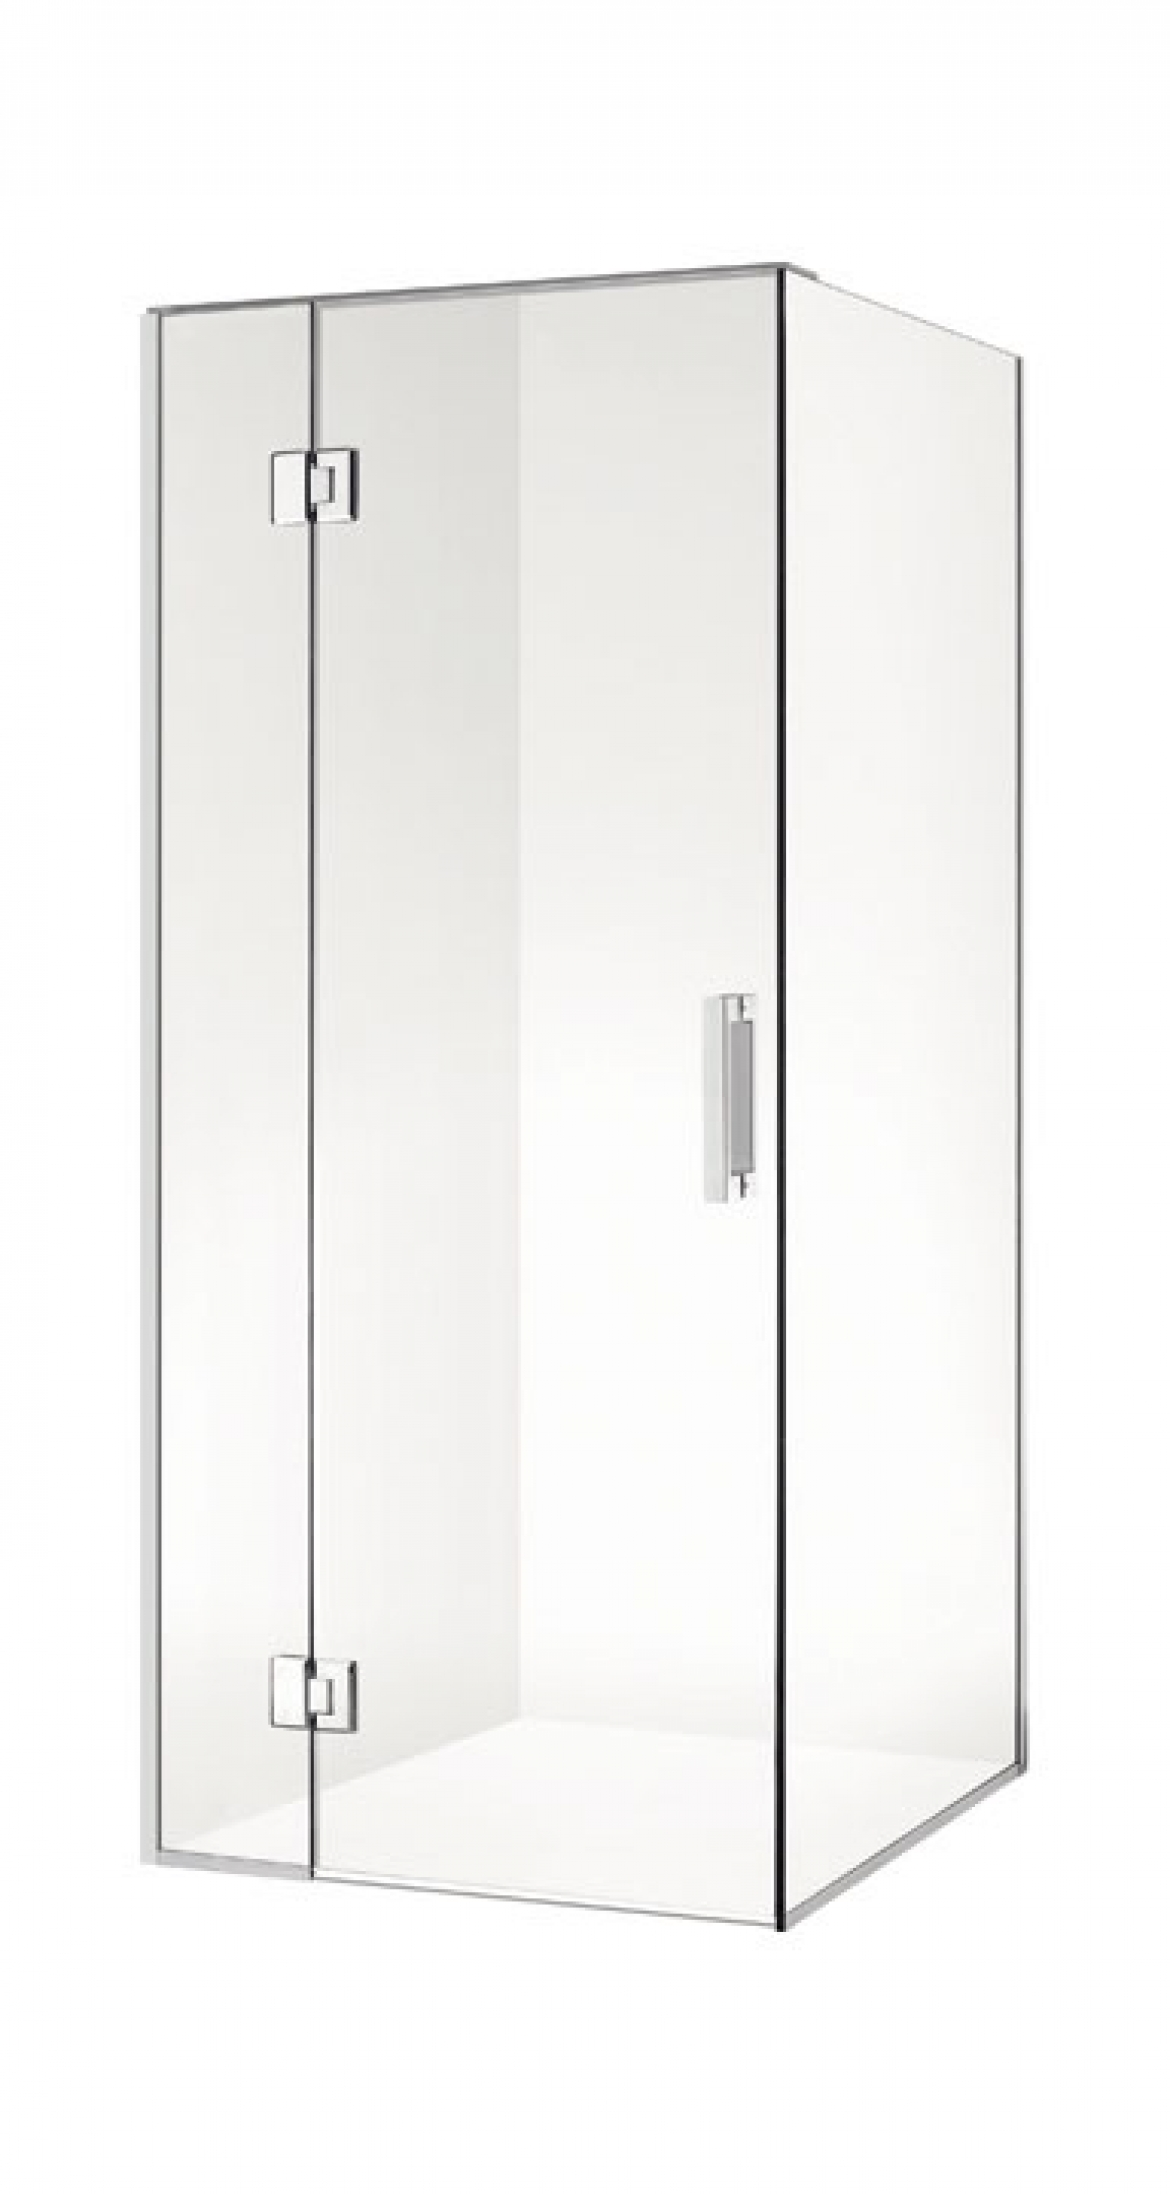 Frameless Shower Screen  Swing door